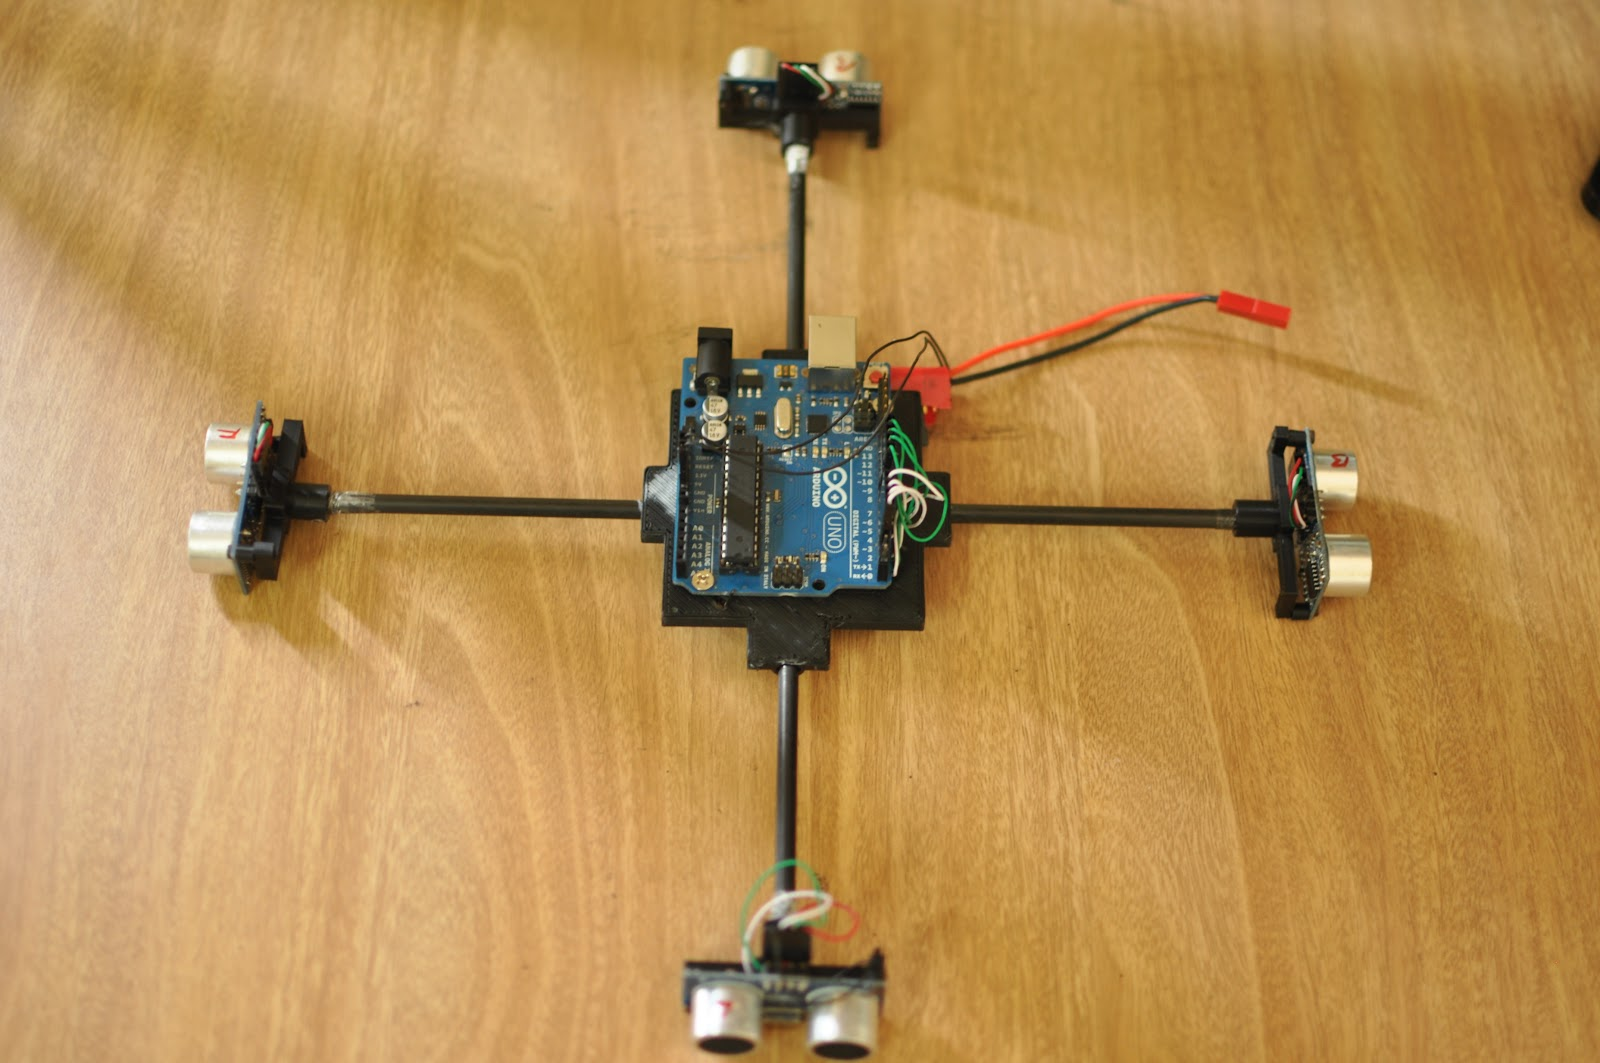 Low cost obstacle detection system for diy drones